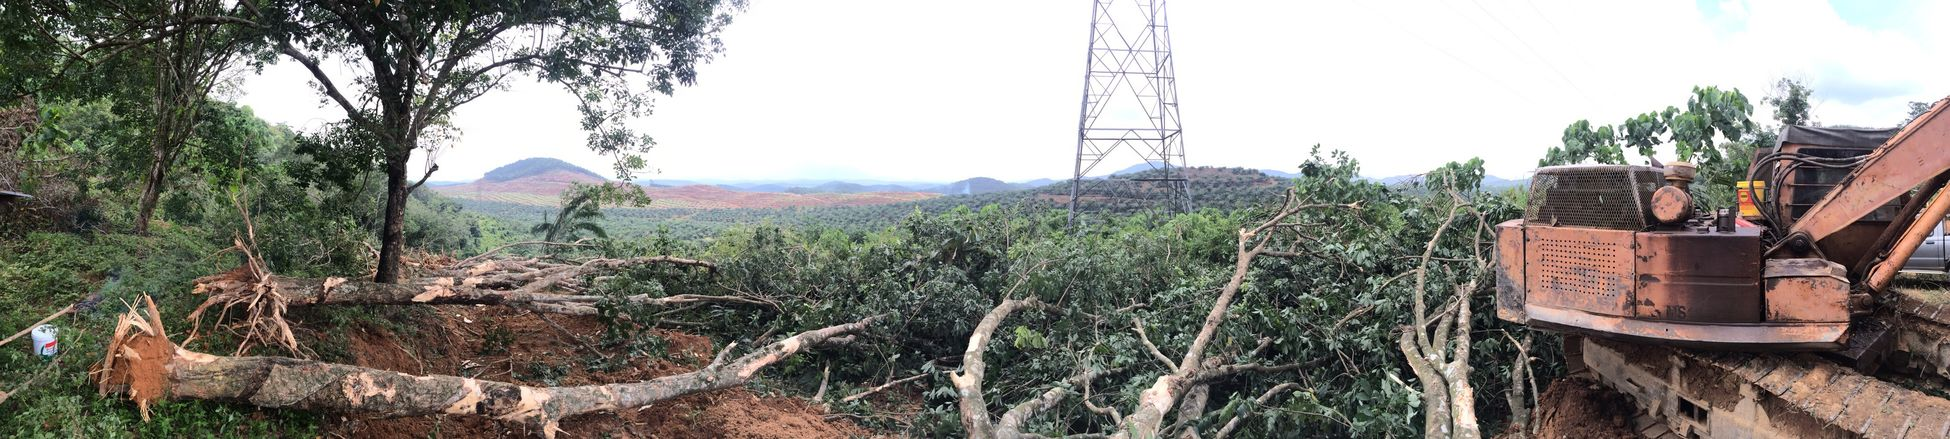 Timber Rubber Plantation Excavator Uphill Replanting Farmer Work Mountview